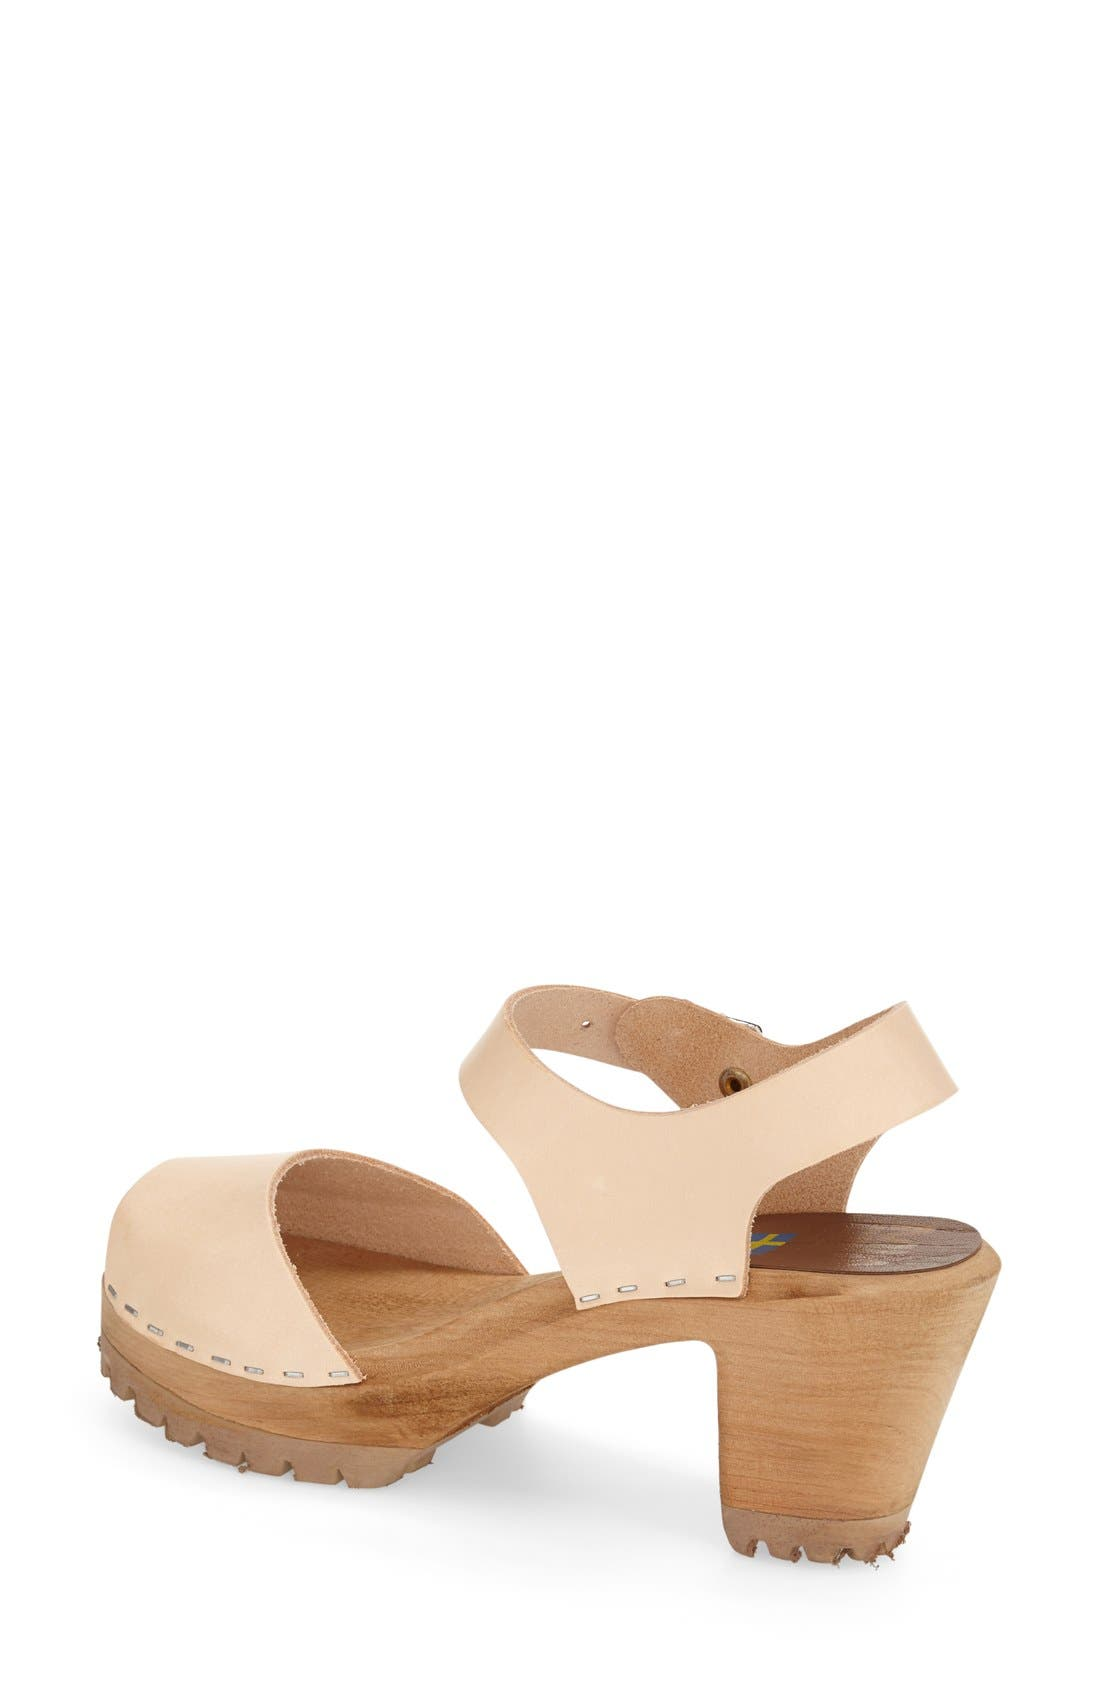 Alternate Image 2  - MIA 'Greta' Clog Sandal (Women)